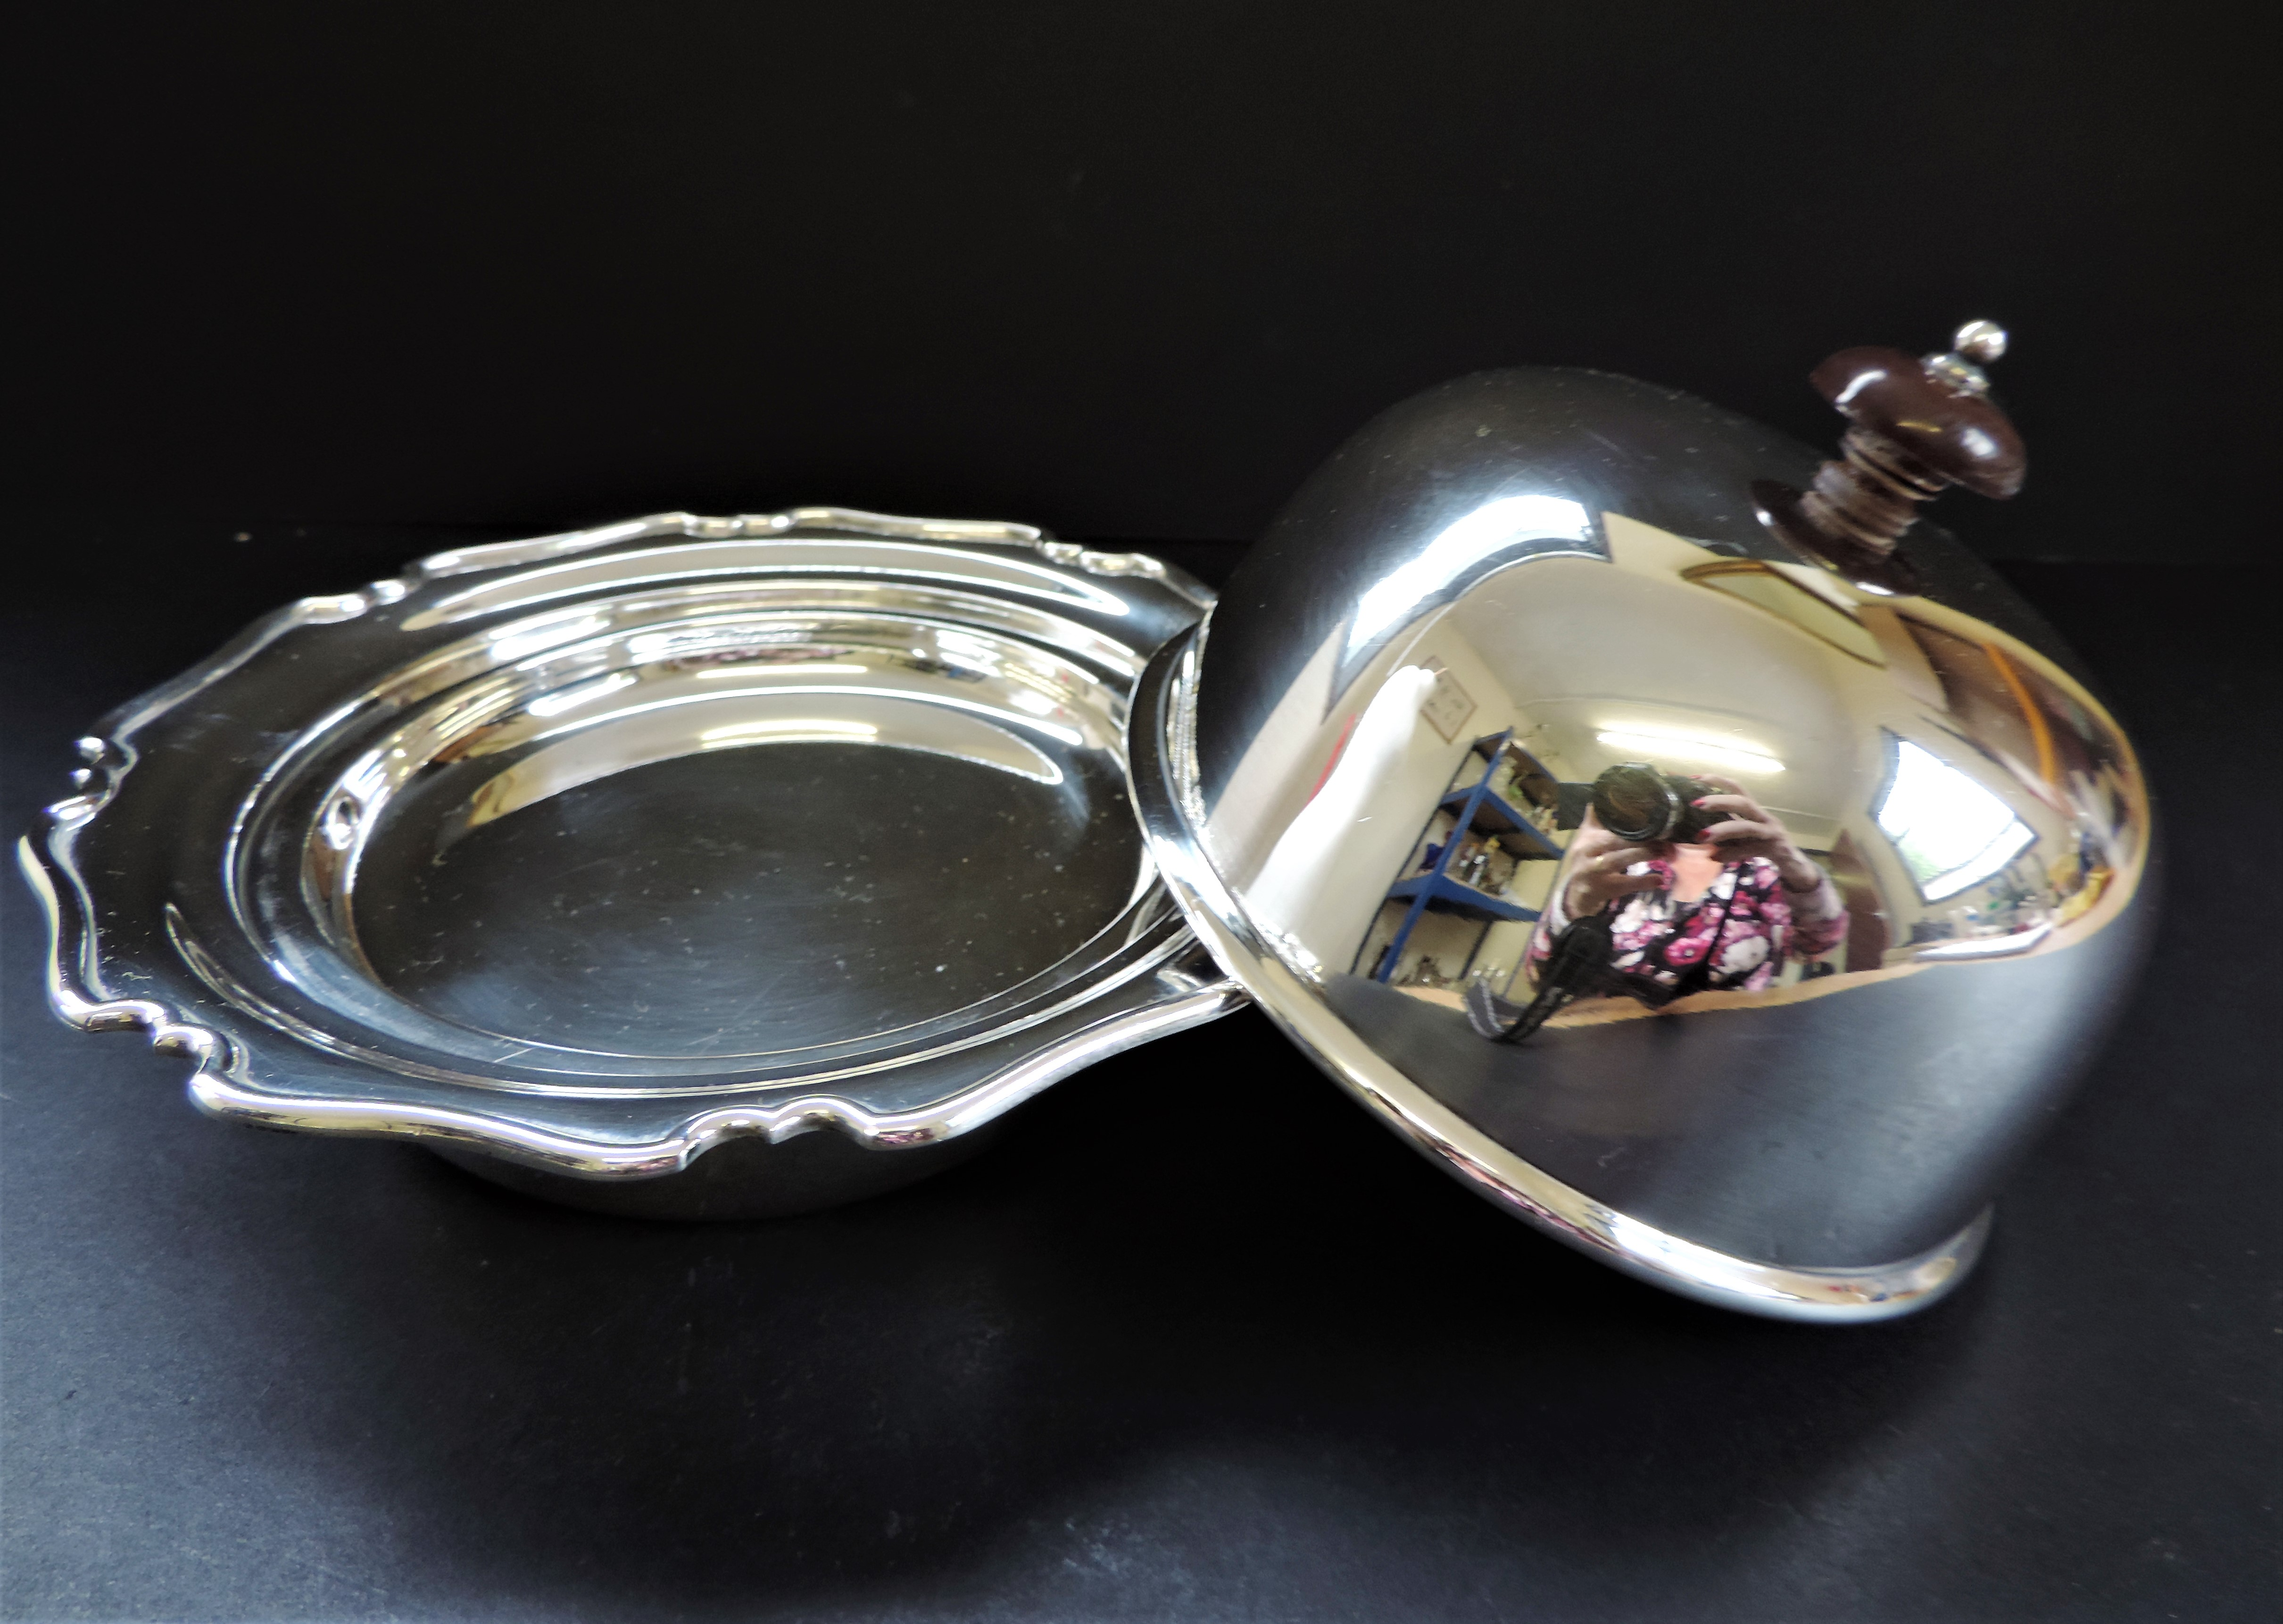 Antique Art Nouveau Silver Plated Muffin Dish/Warmer - Image 3 of 7